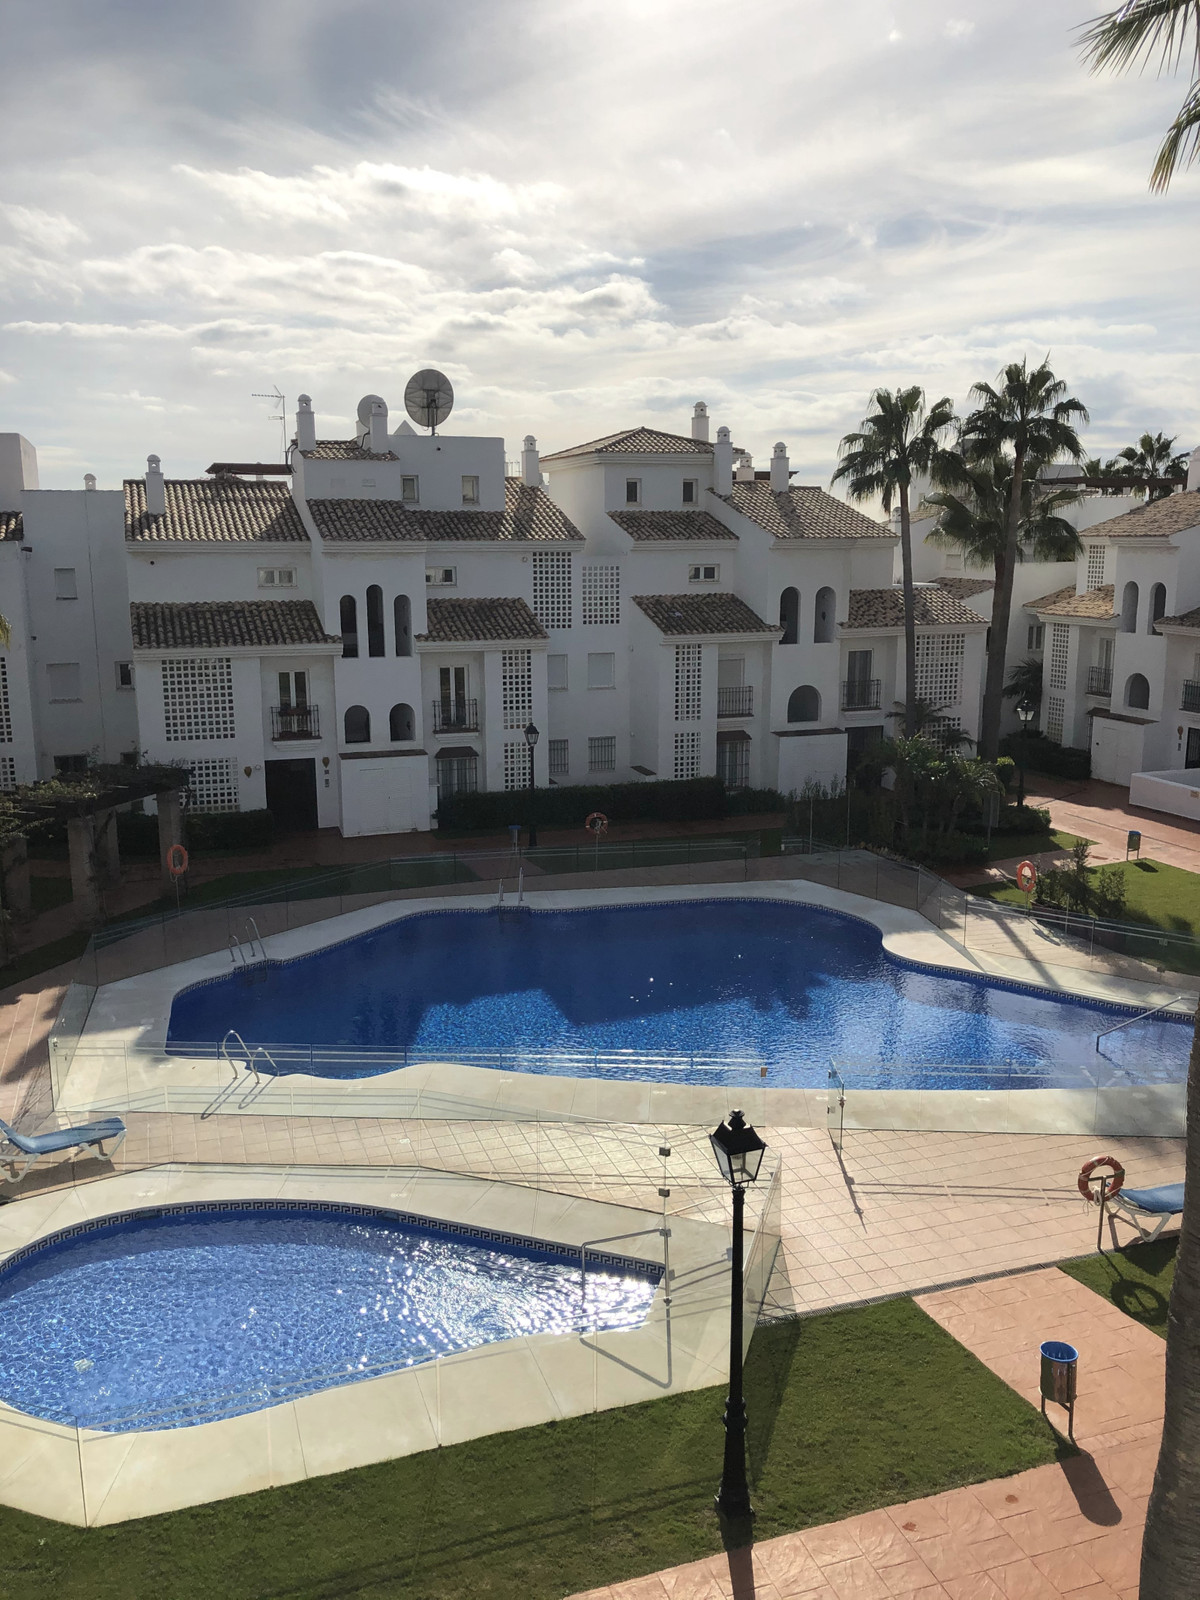 REDUCED IN PRICE WAS €400,000 NOW €370,000!!!  This amazing penthouse is for sale beachside of San P,Spain